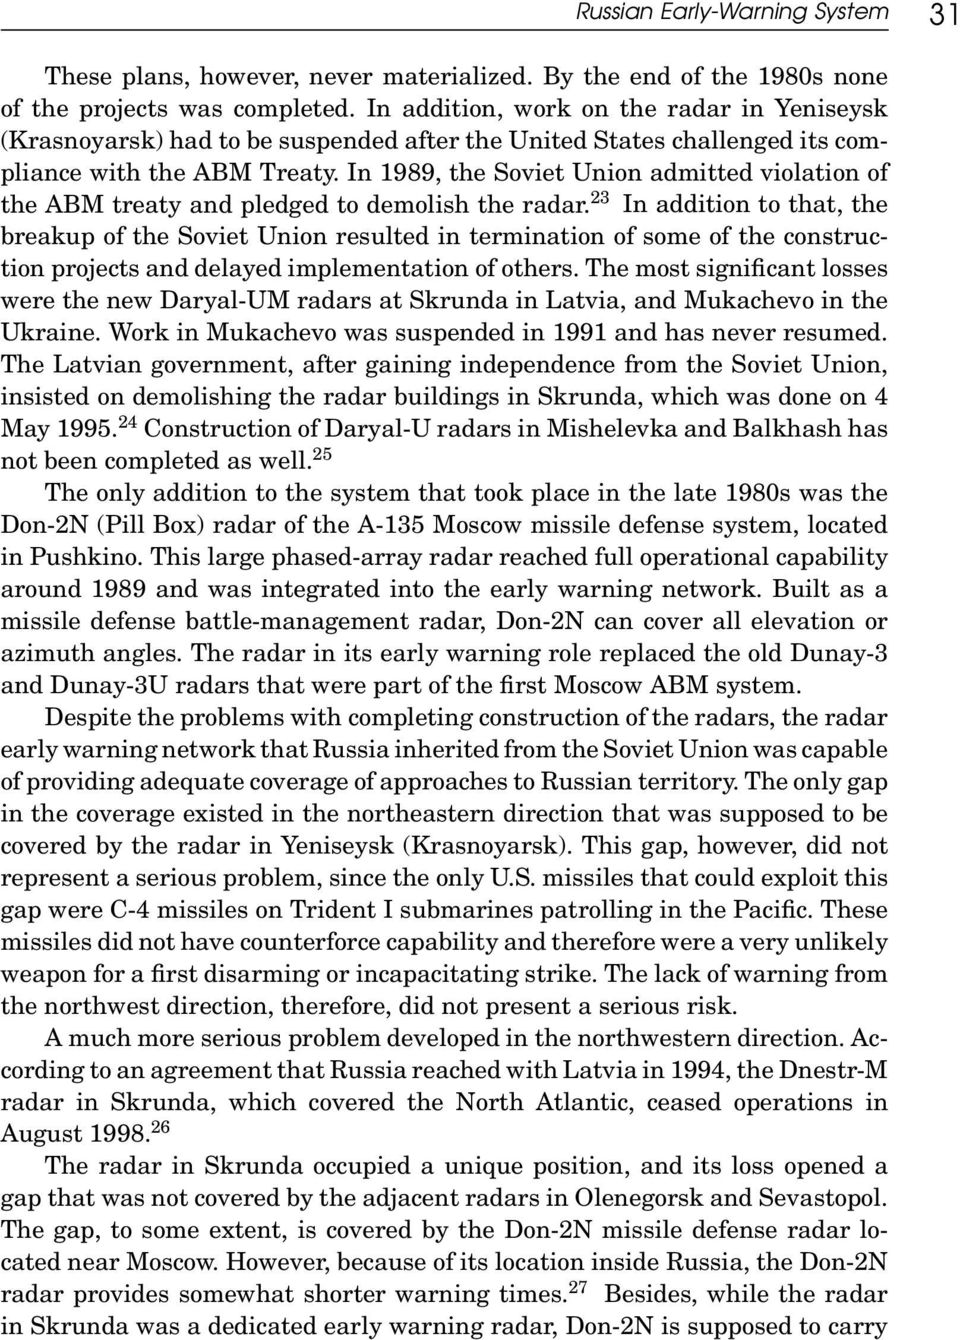 In 1989, the Soviet Union admitted violation of the ABM treaty and pledged to demolish the radar.